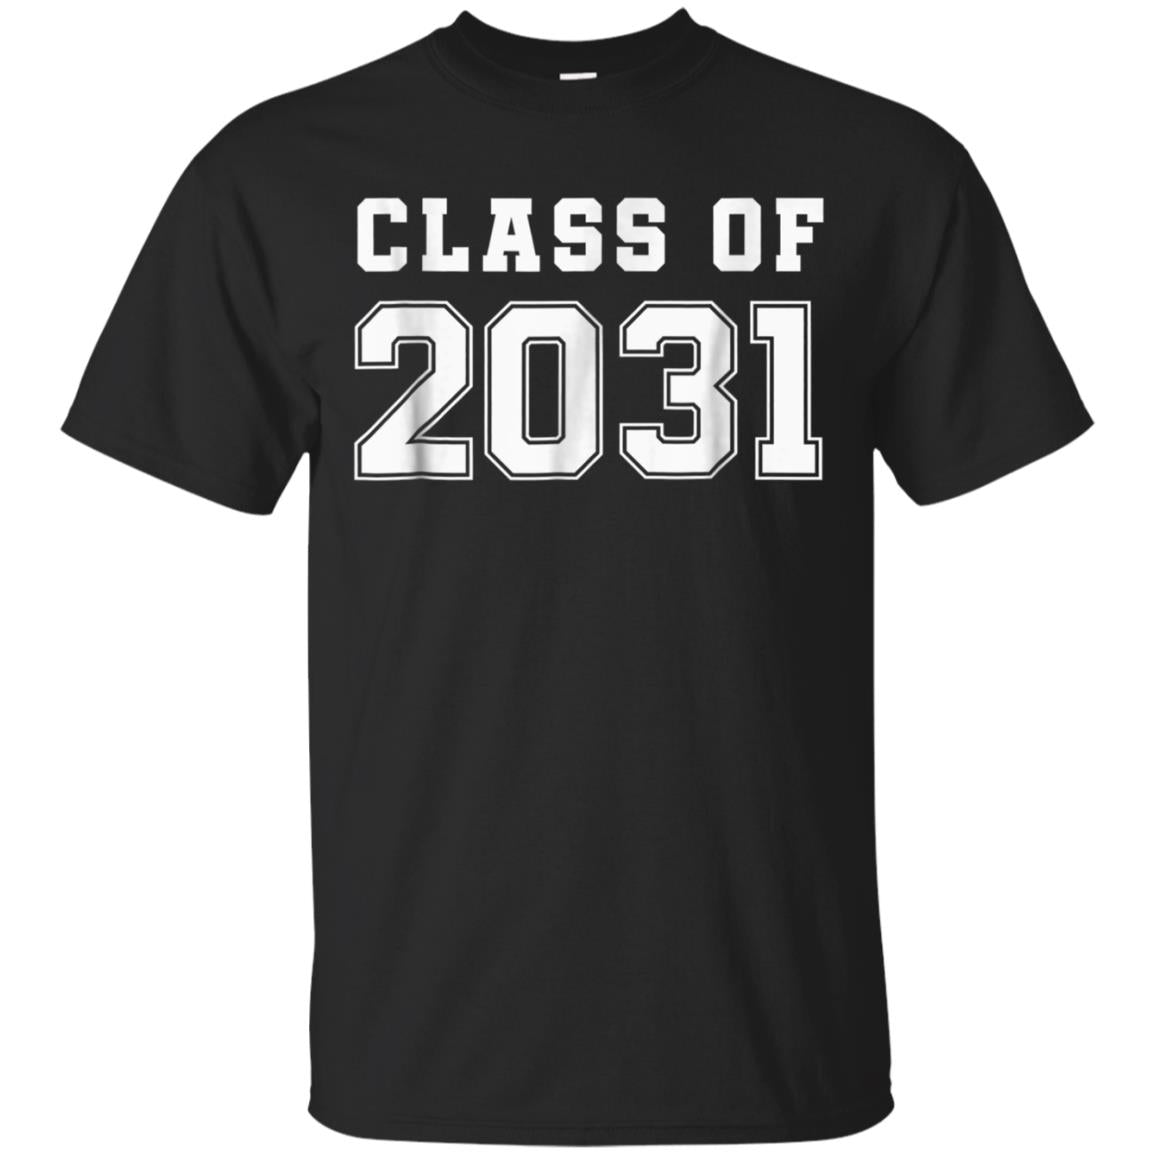 Class of 2031 T-Shirt First Day of School Grow With Me Shirt 99promocode